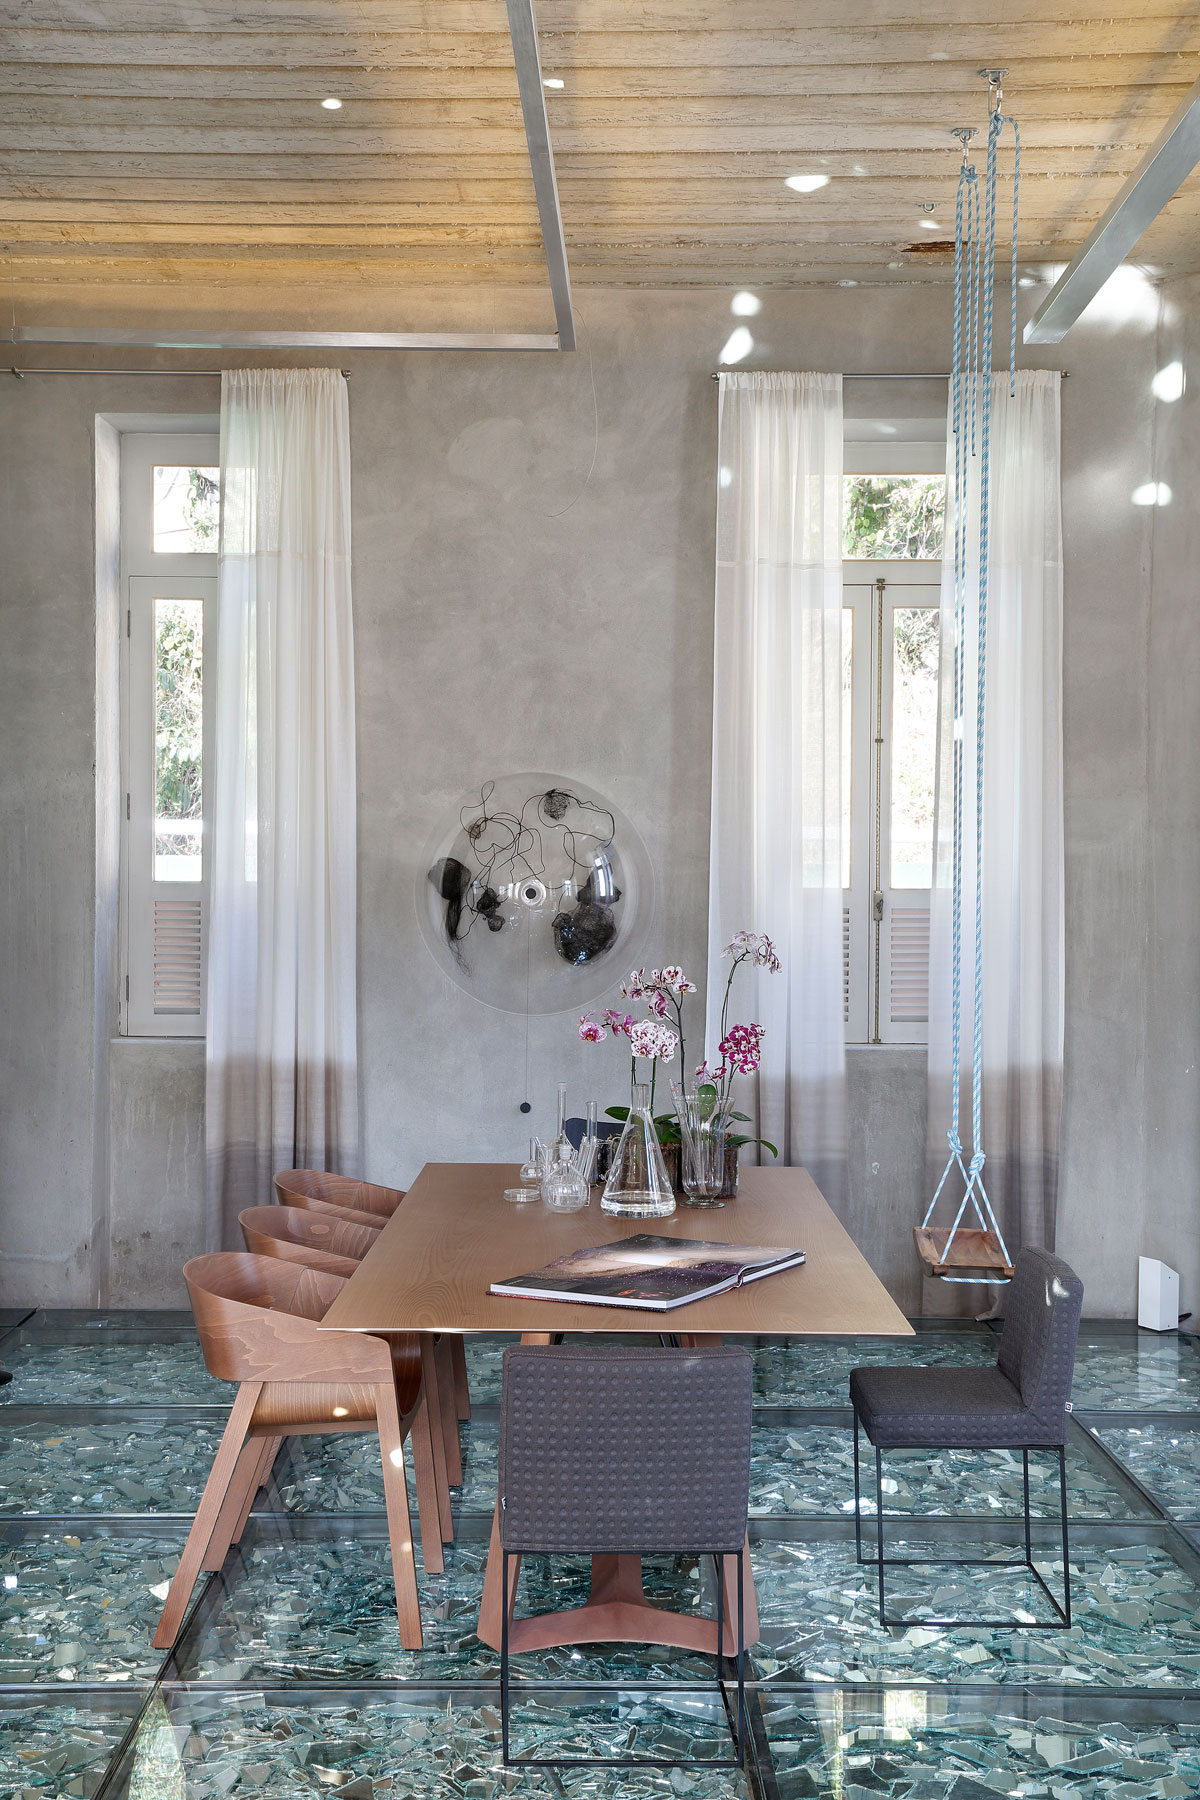 Stylish and Eclectic Design with Broken Glass Floor of Lab LZ for Casa Cor Rio 2015 by Giselle Taranto Architecture-25